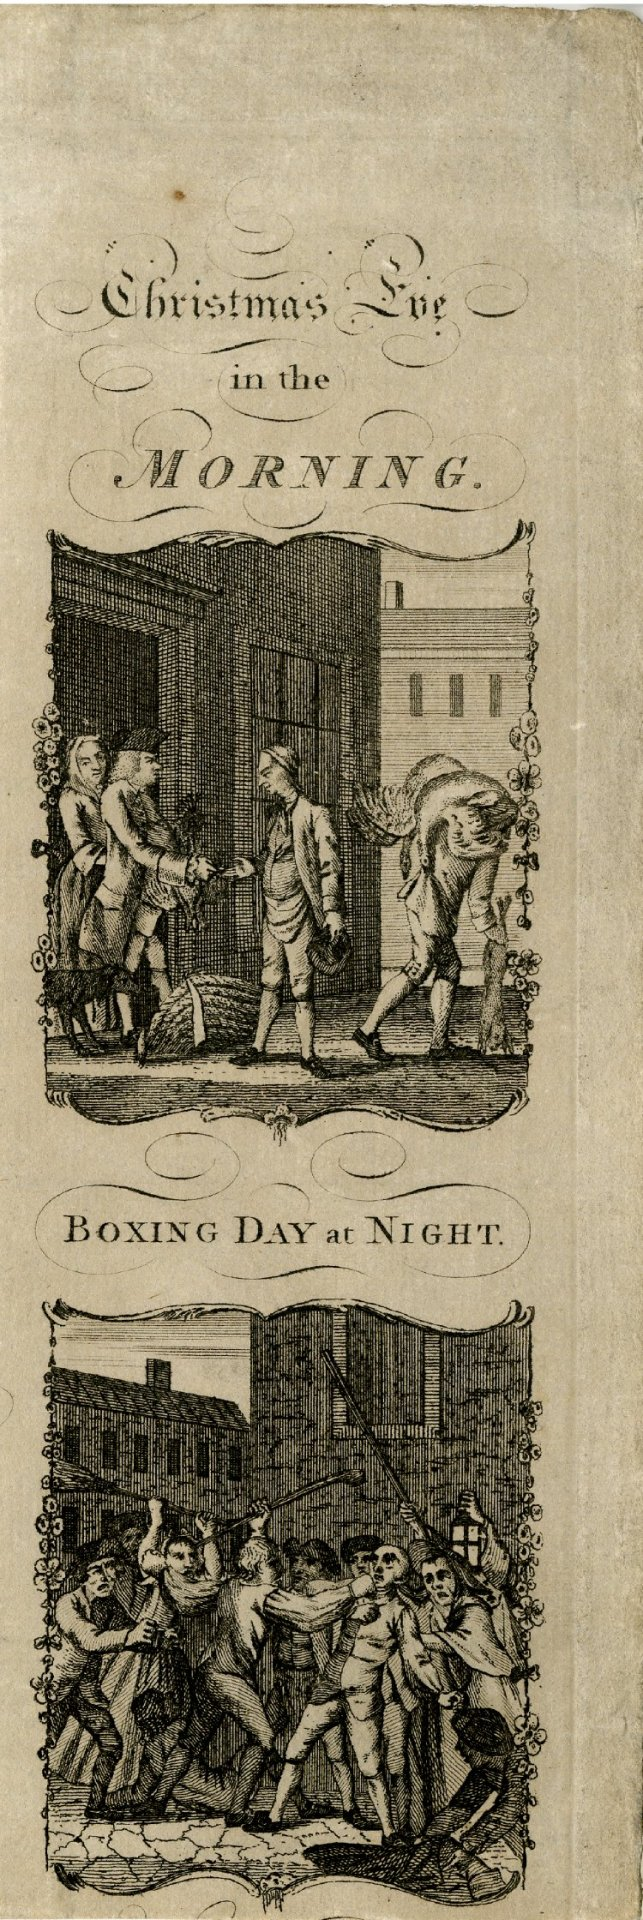 centuriespast:  Christmas Eve in the Morning / Boxing Day at Night Print made by Anonymous .1770-1800 (circa) The British Museum  Lol that's funny!!! :)